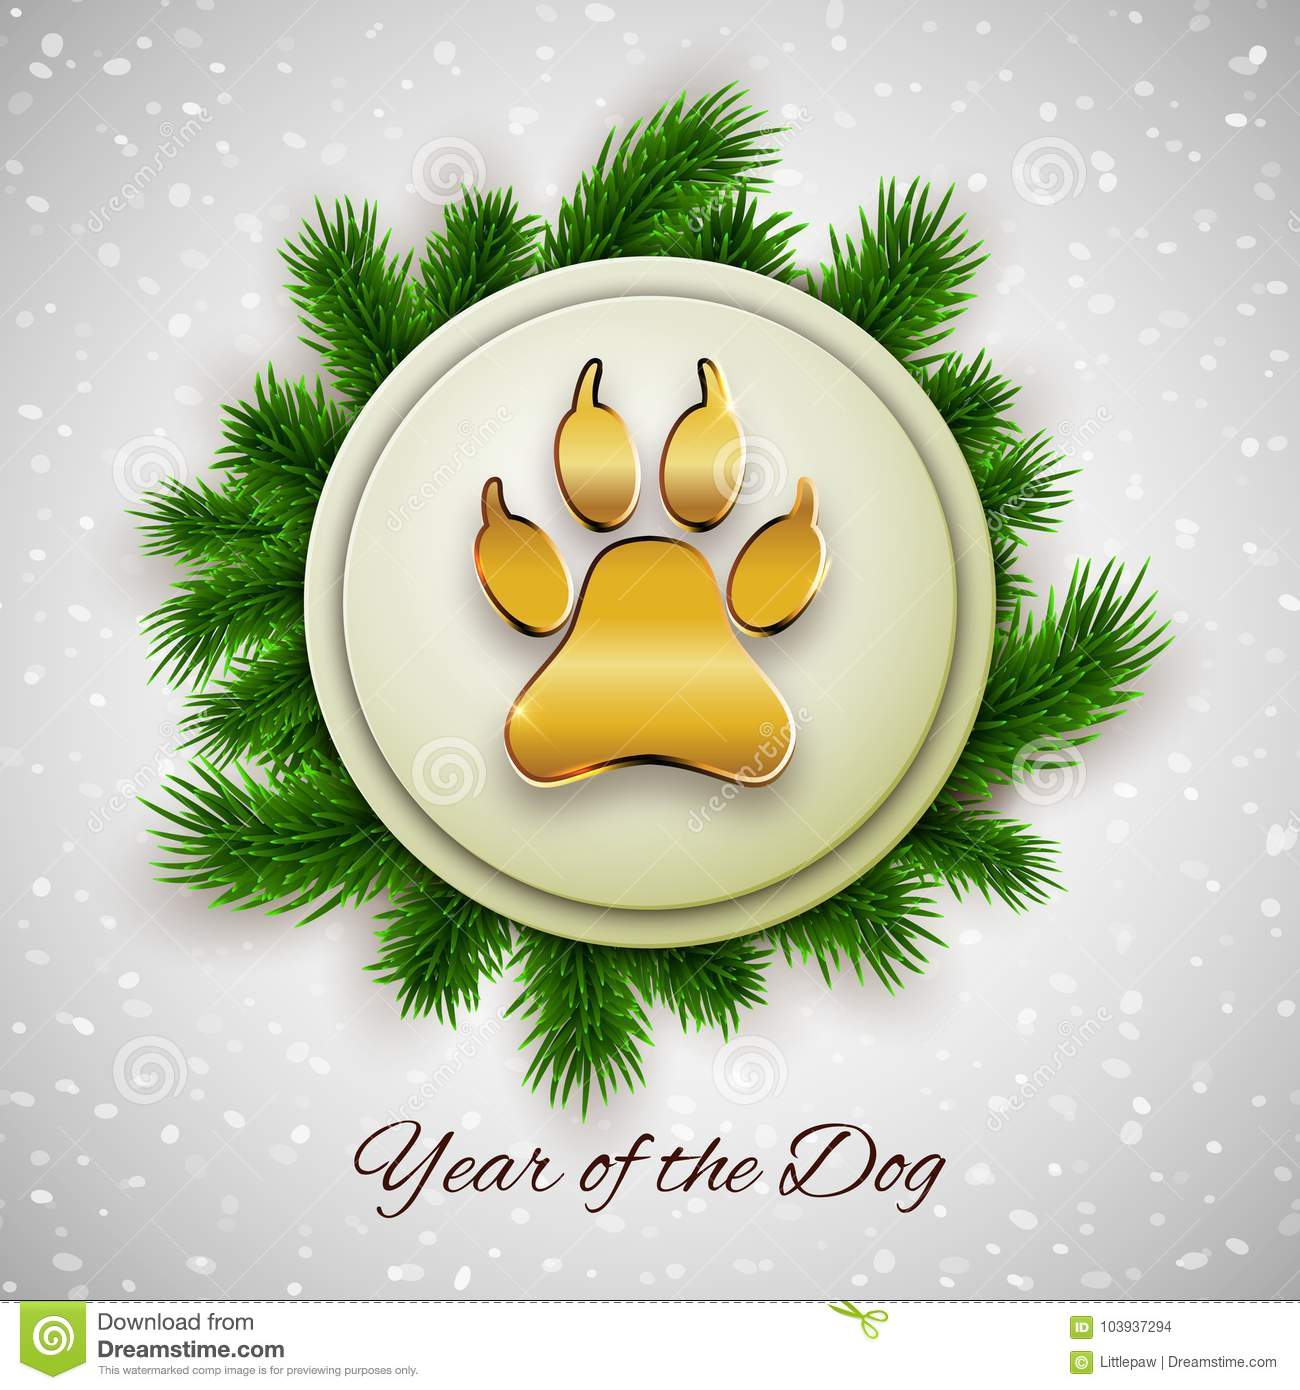 New Year of the dog holiday postcard with paw footprint, vector